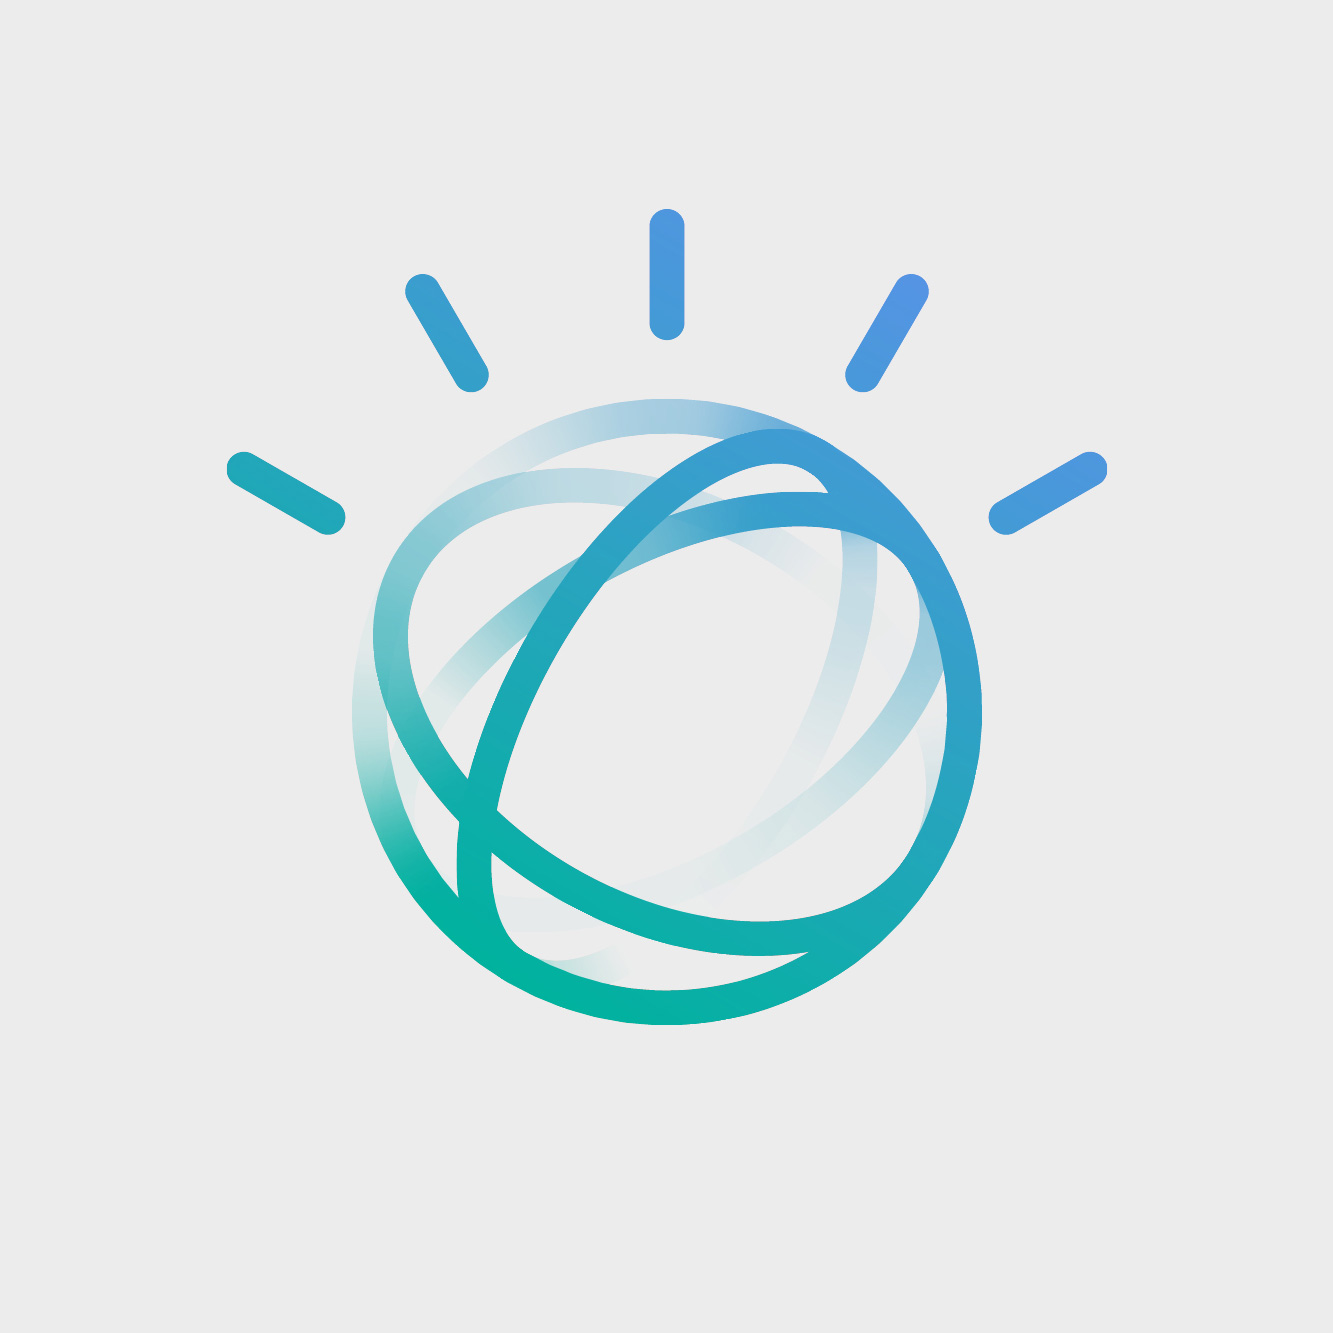 Brand New: New Logo And Identity For IBM Watson Done In